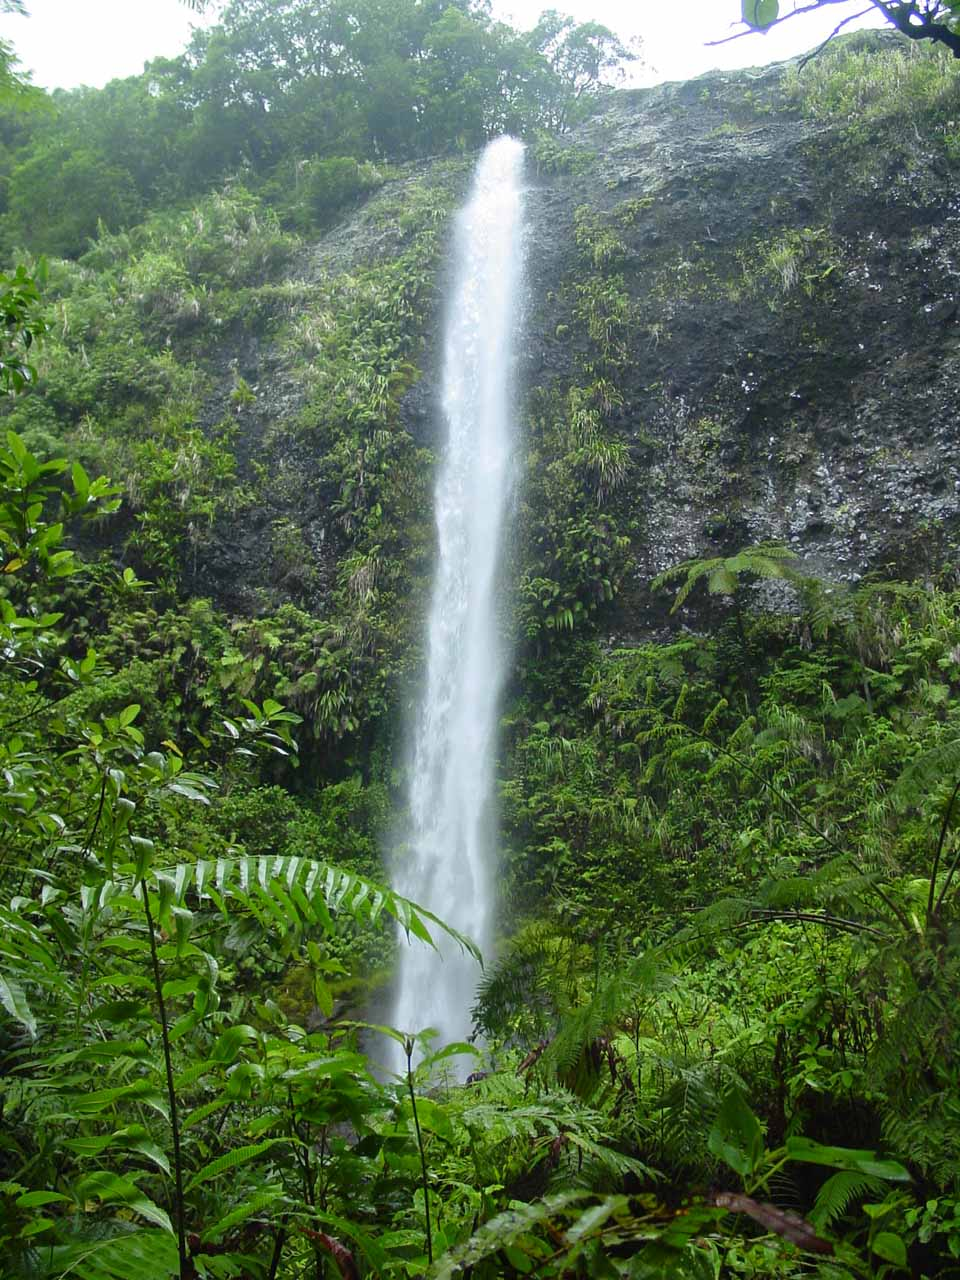 Savu-i-One Waterfall in Koroyanitu National Park near the remote Abaca